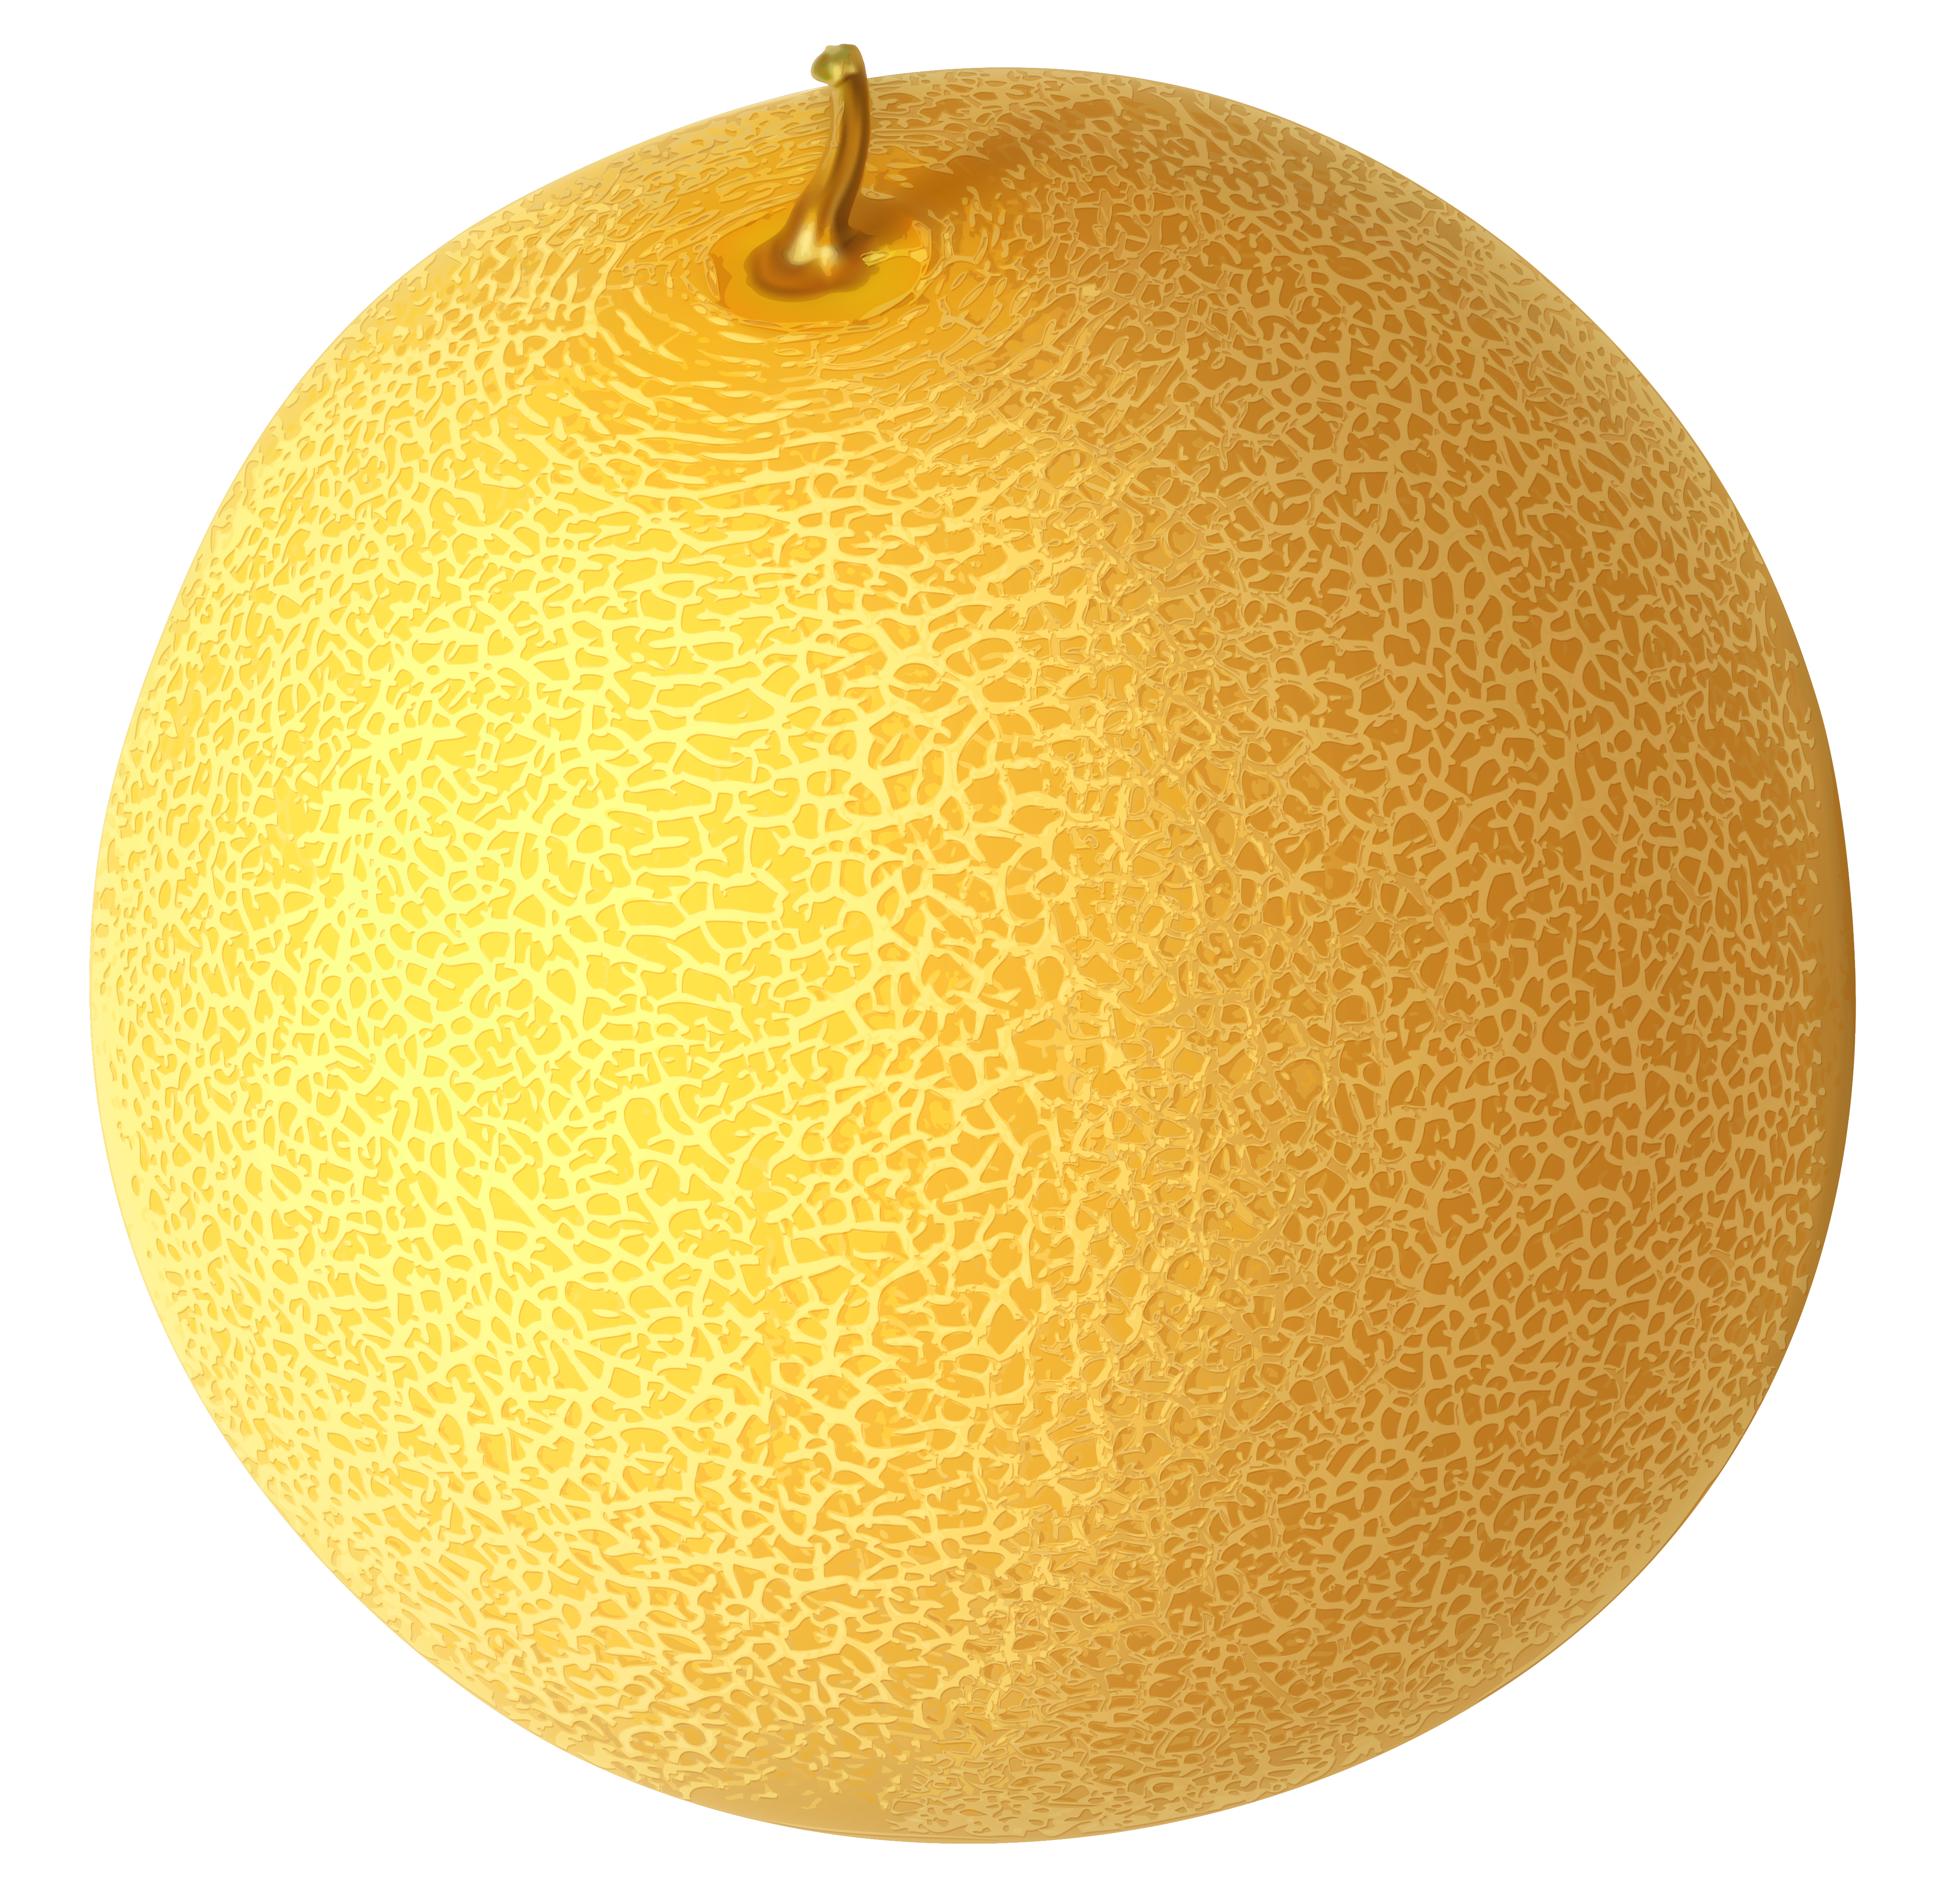 Clipart cantaloupe png library download Cantaloupe PNG Clipart Picture   Gallery Yopriceville - High ... png library download